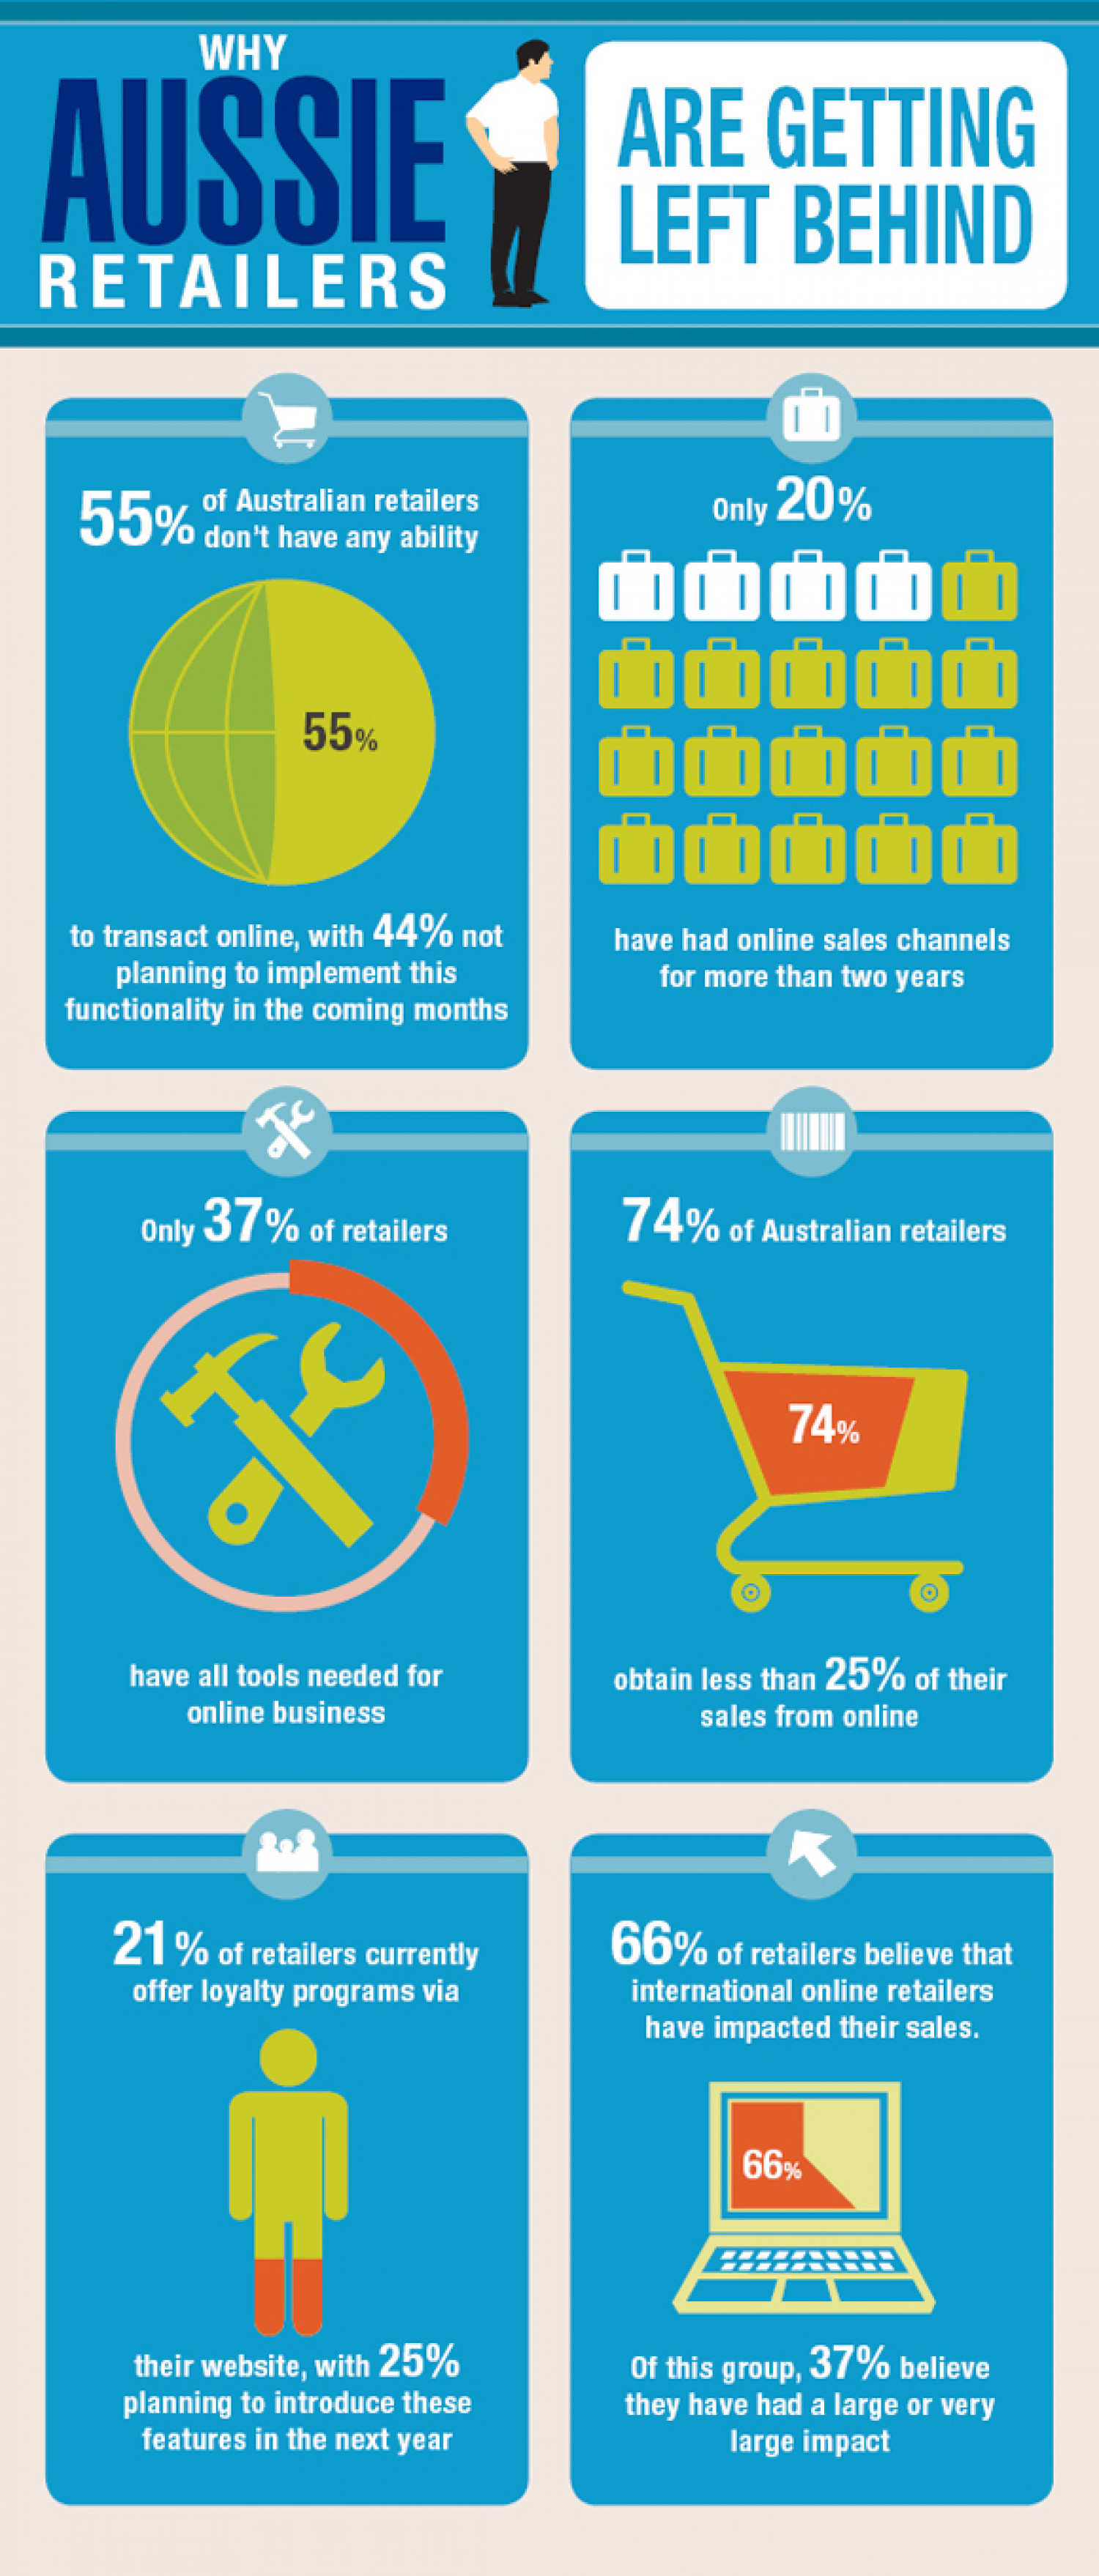 Why Aussie Retailers Infographic